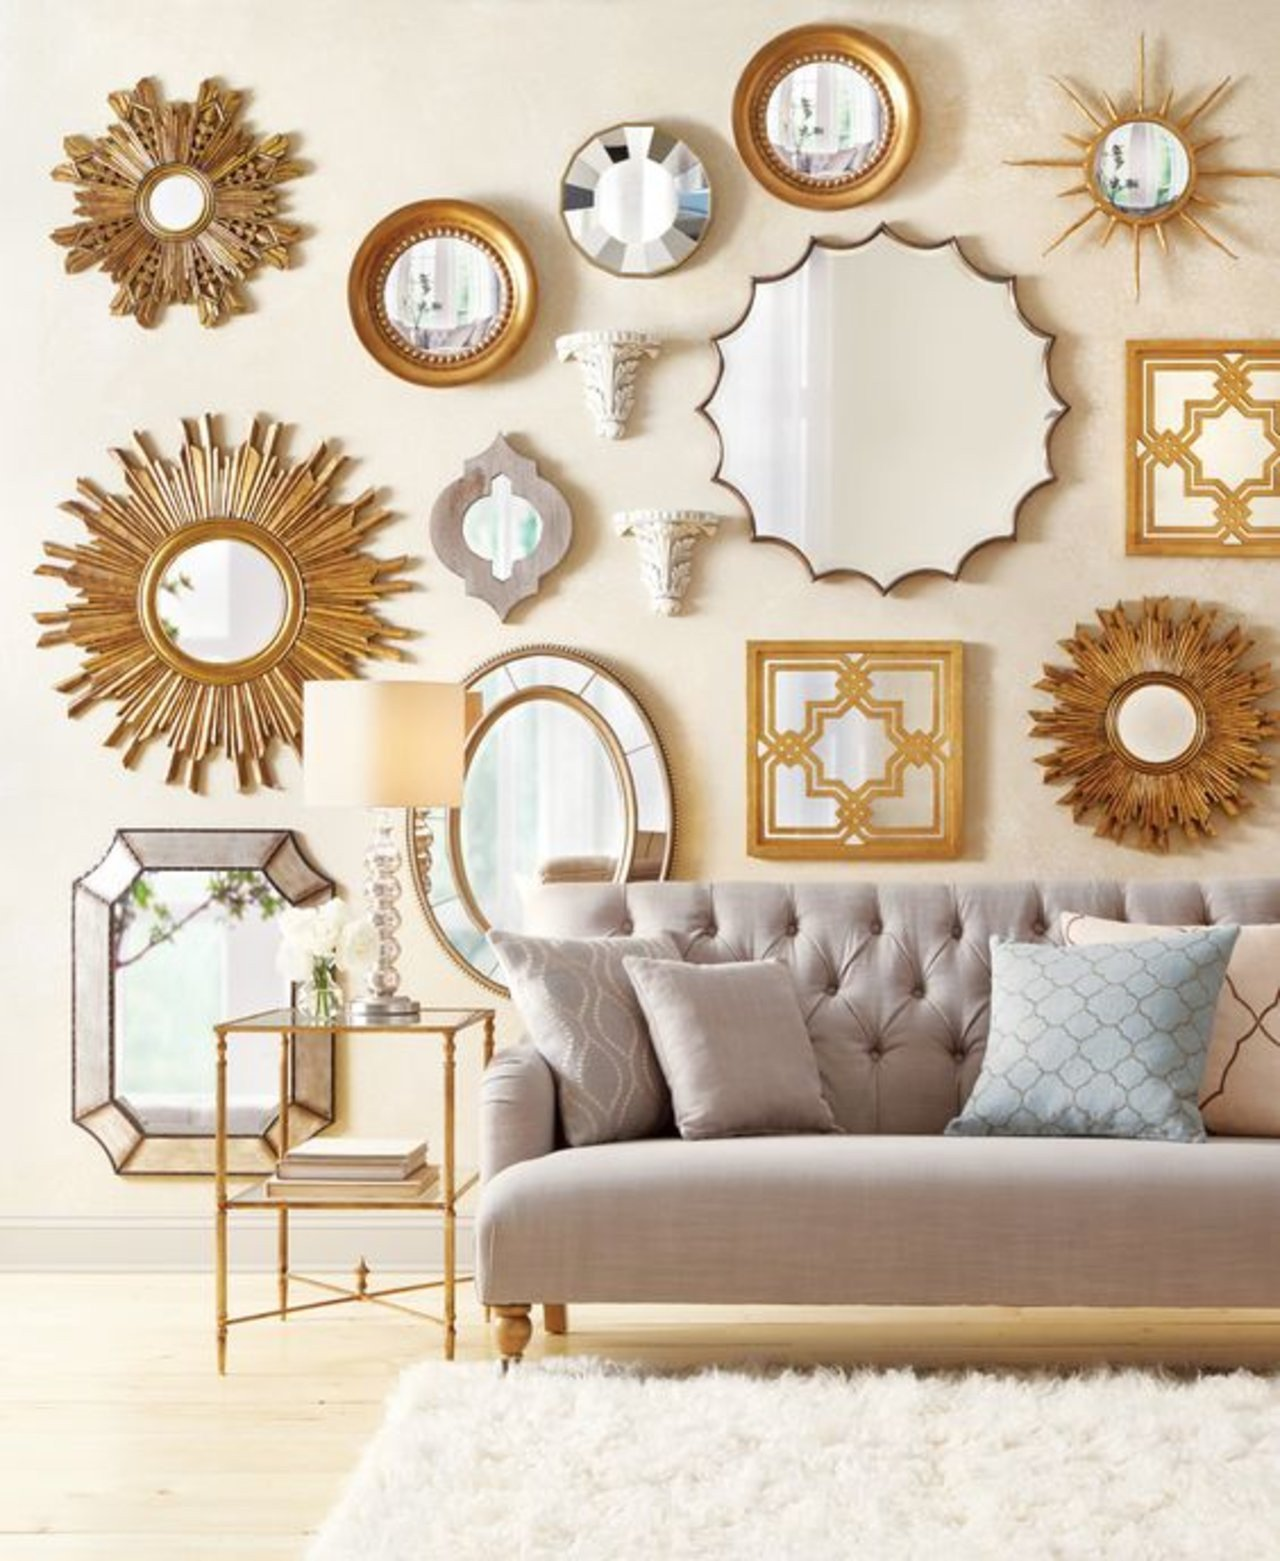 Small Mirrors for Wall Decor Luxury Wall Decor 10 Best Mirror Decorating Ideas for Your Room Maximize Your Living Room S Style